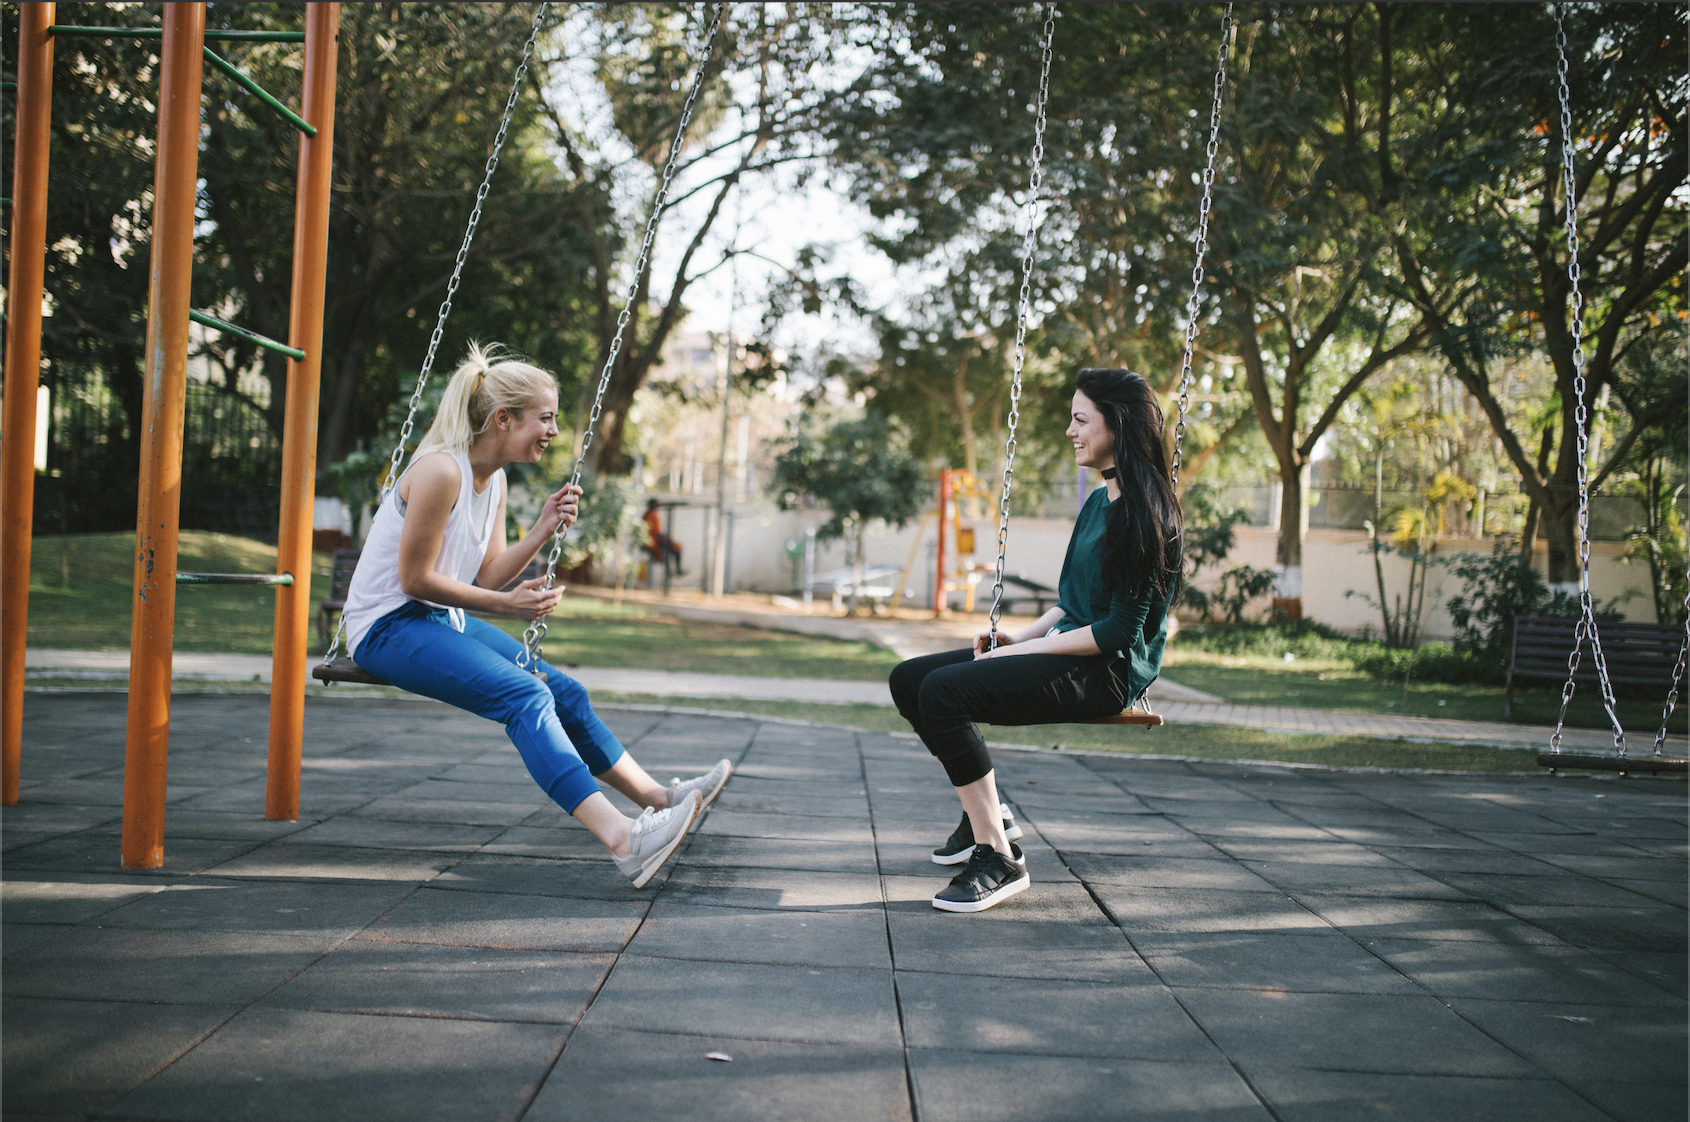 Teens talking on a playground